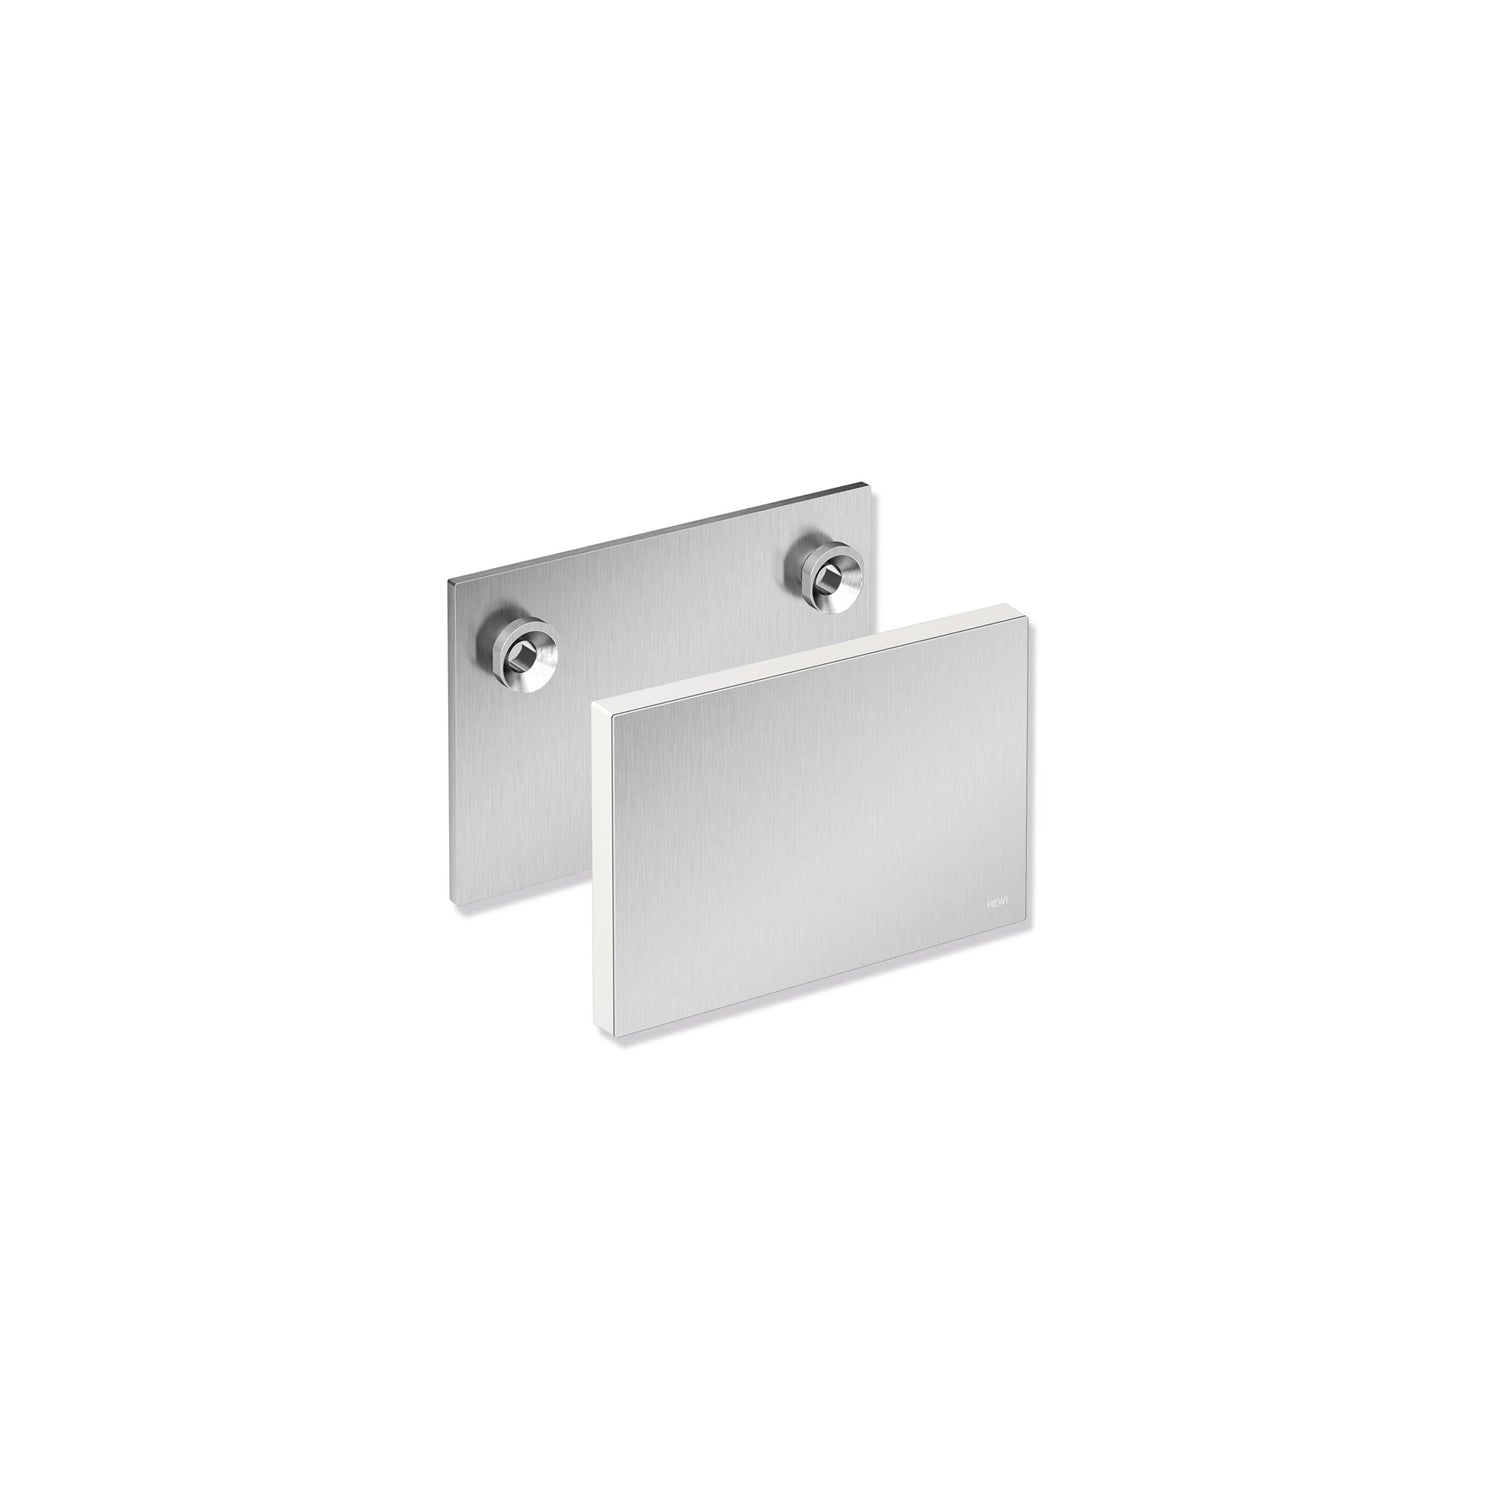 Freestyle Removable Shower Seat Mounting Plate and Cover with a satin steel finish on a white background